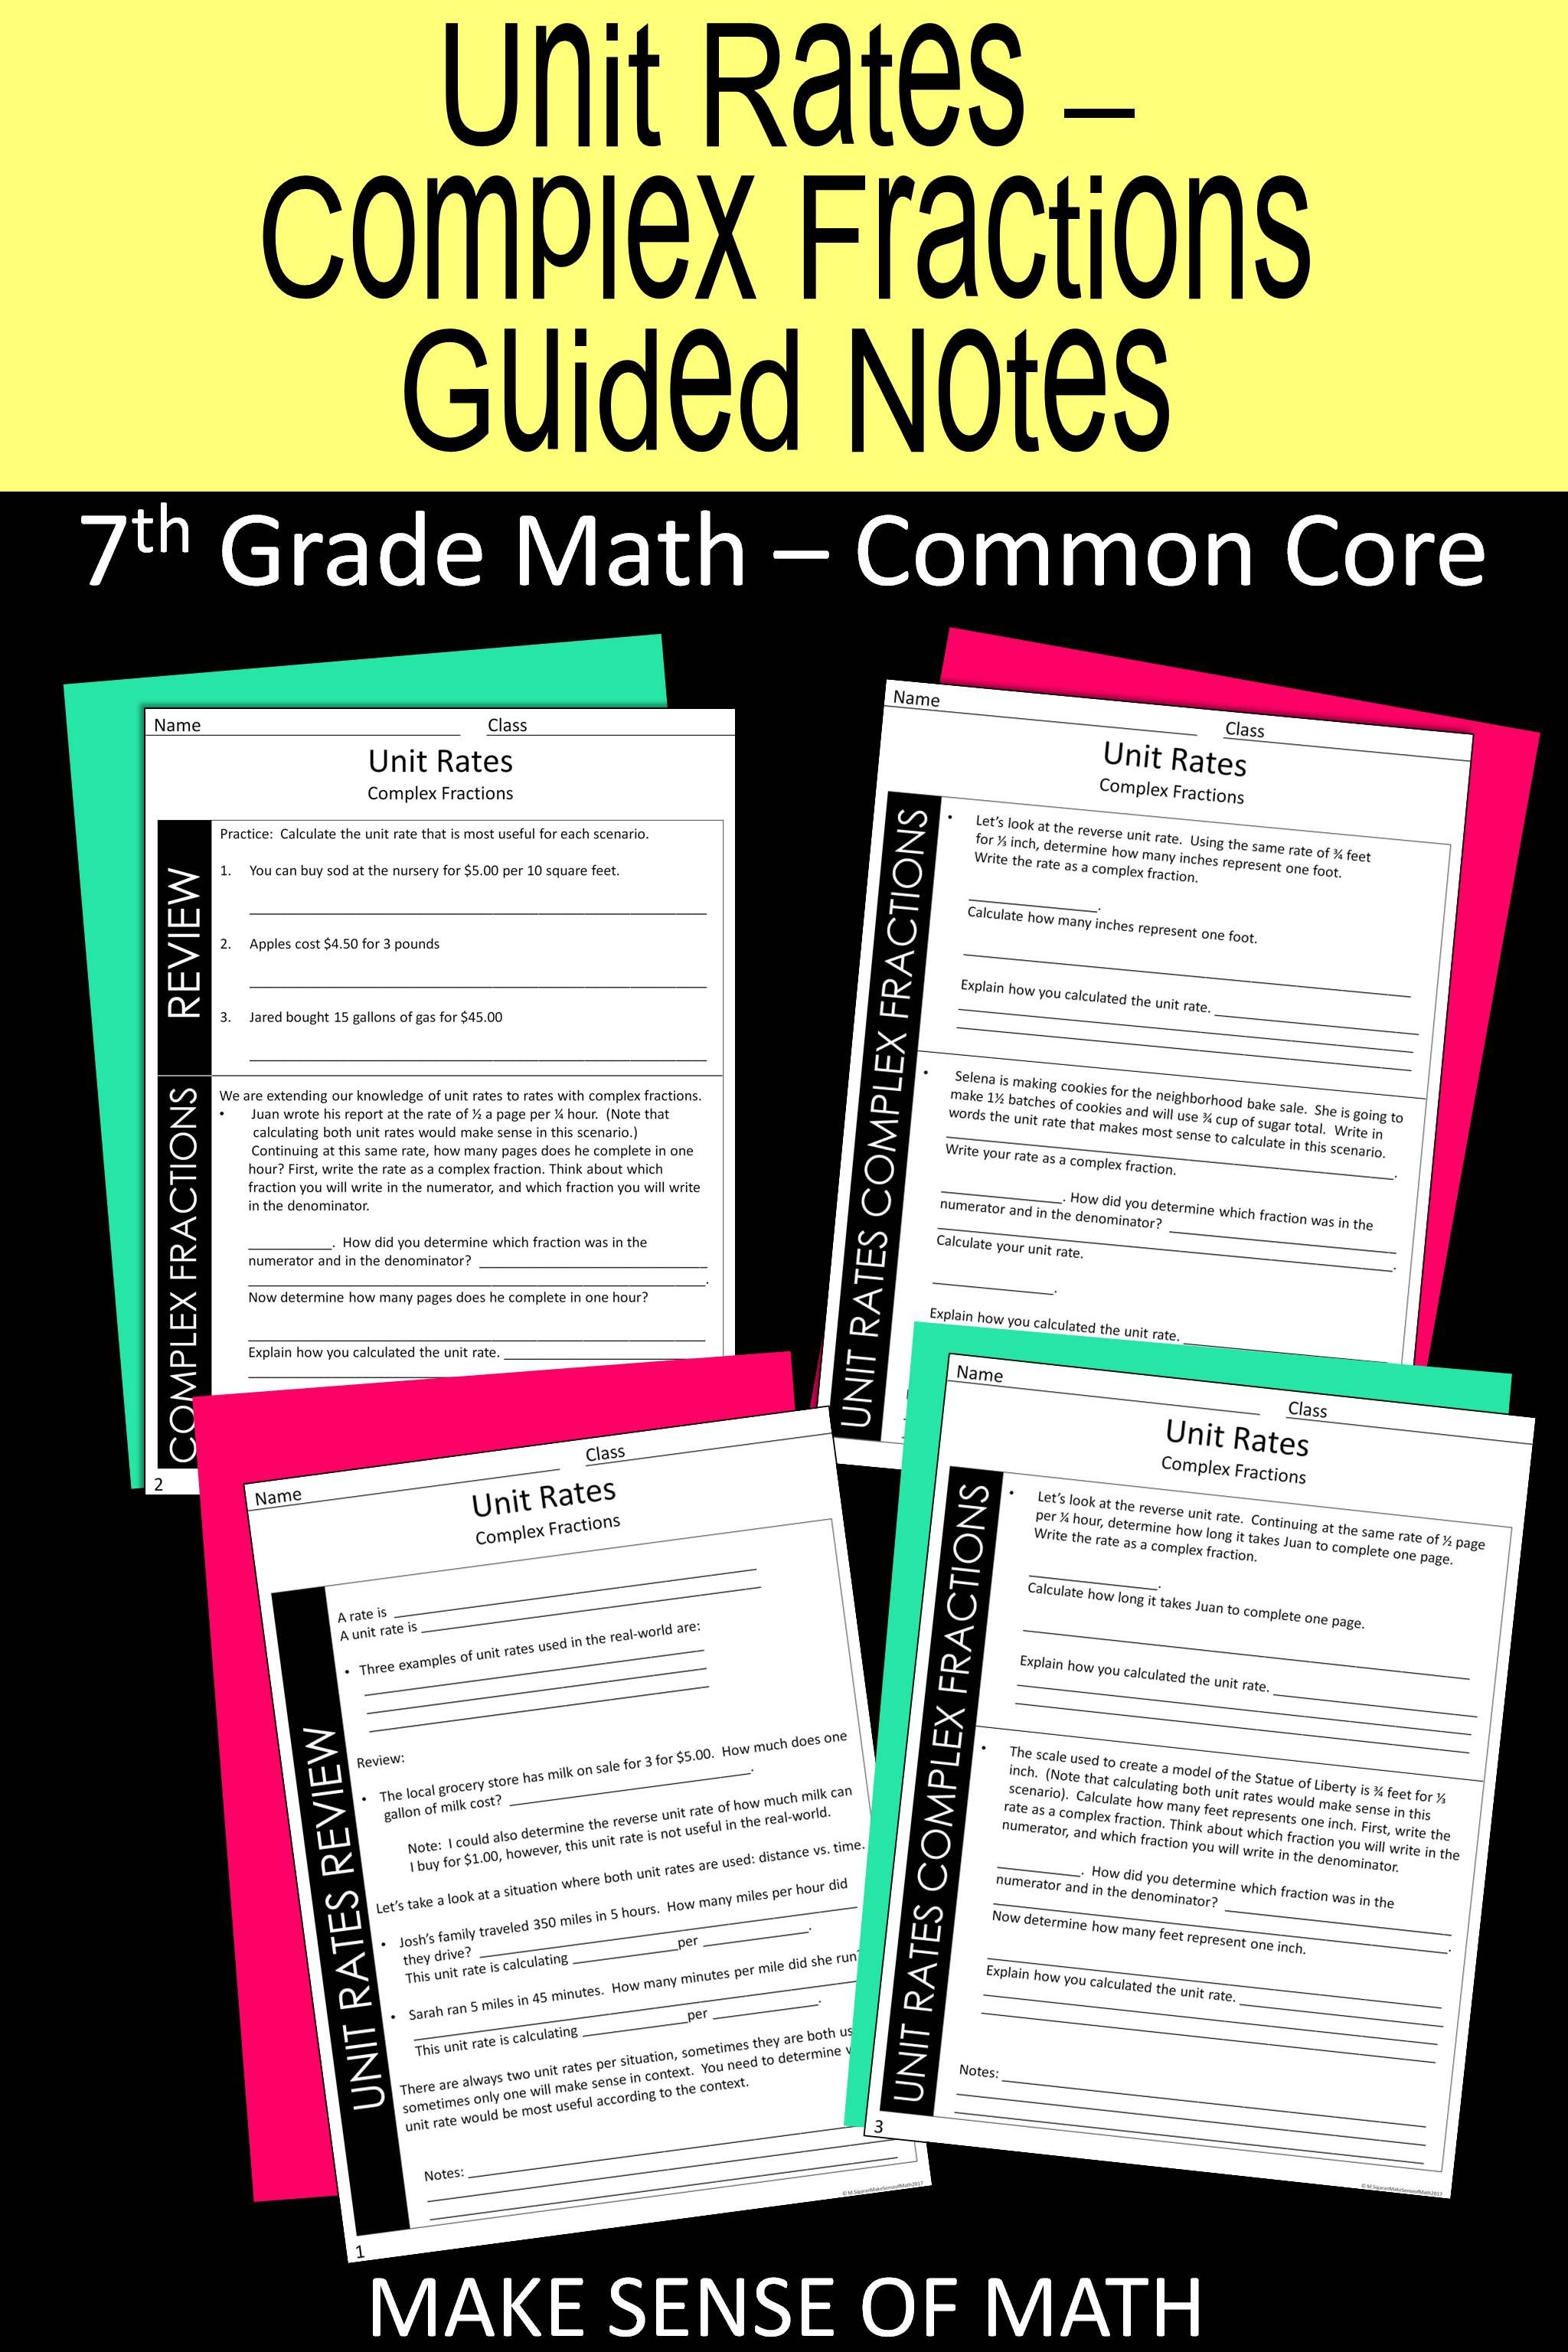 Unit Rates Guided Notes With Complex Fractions